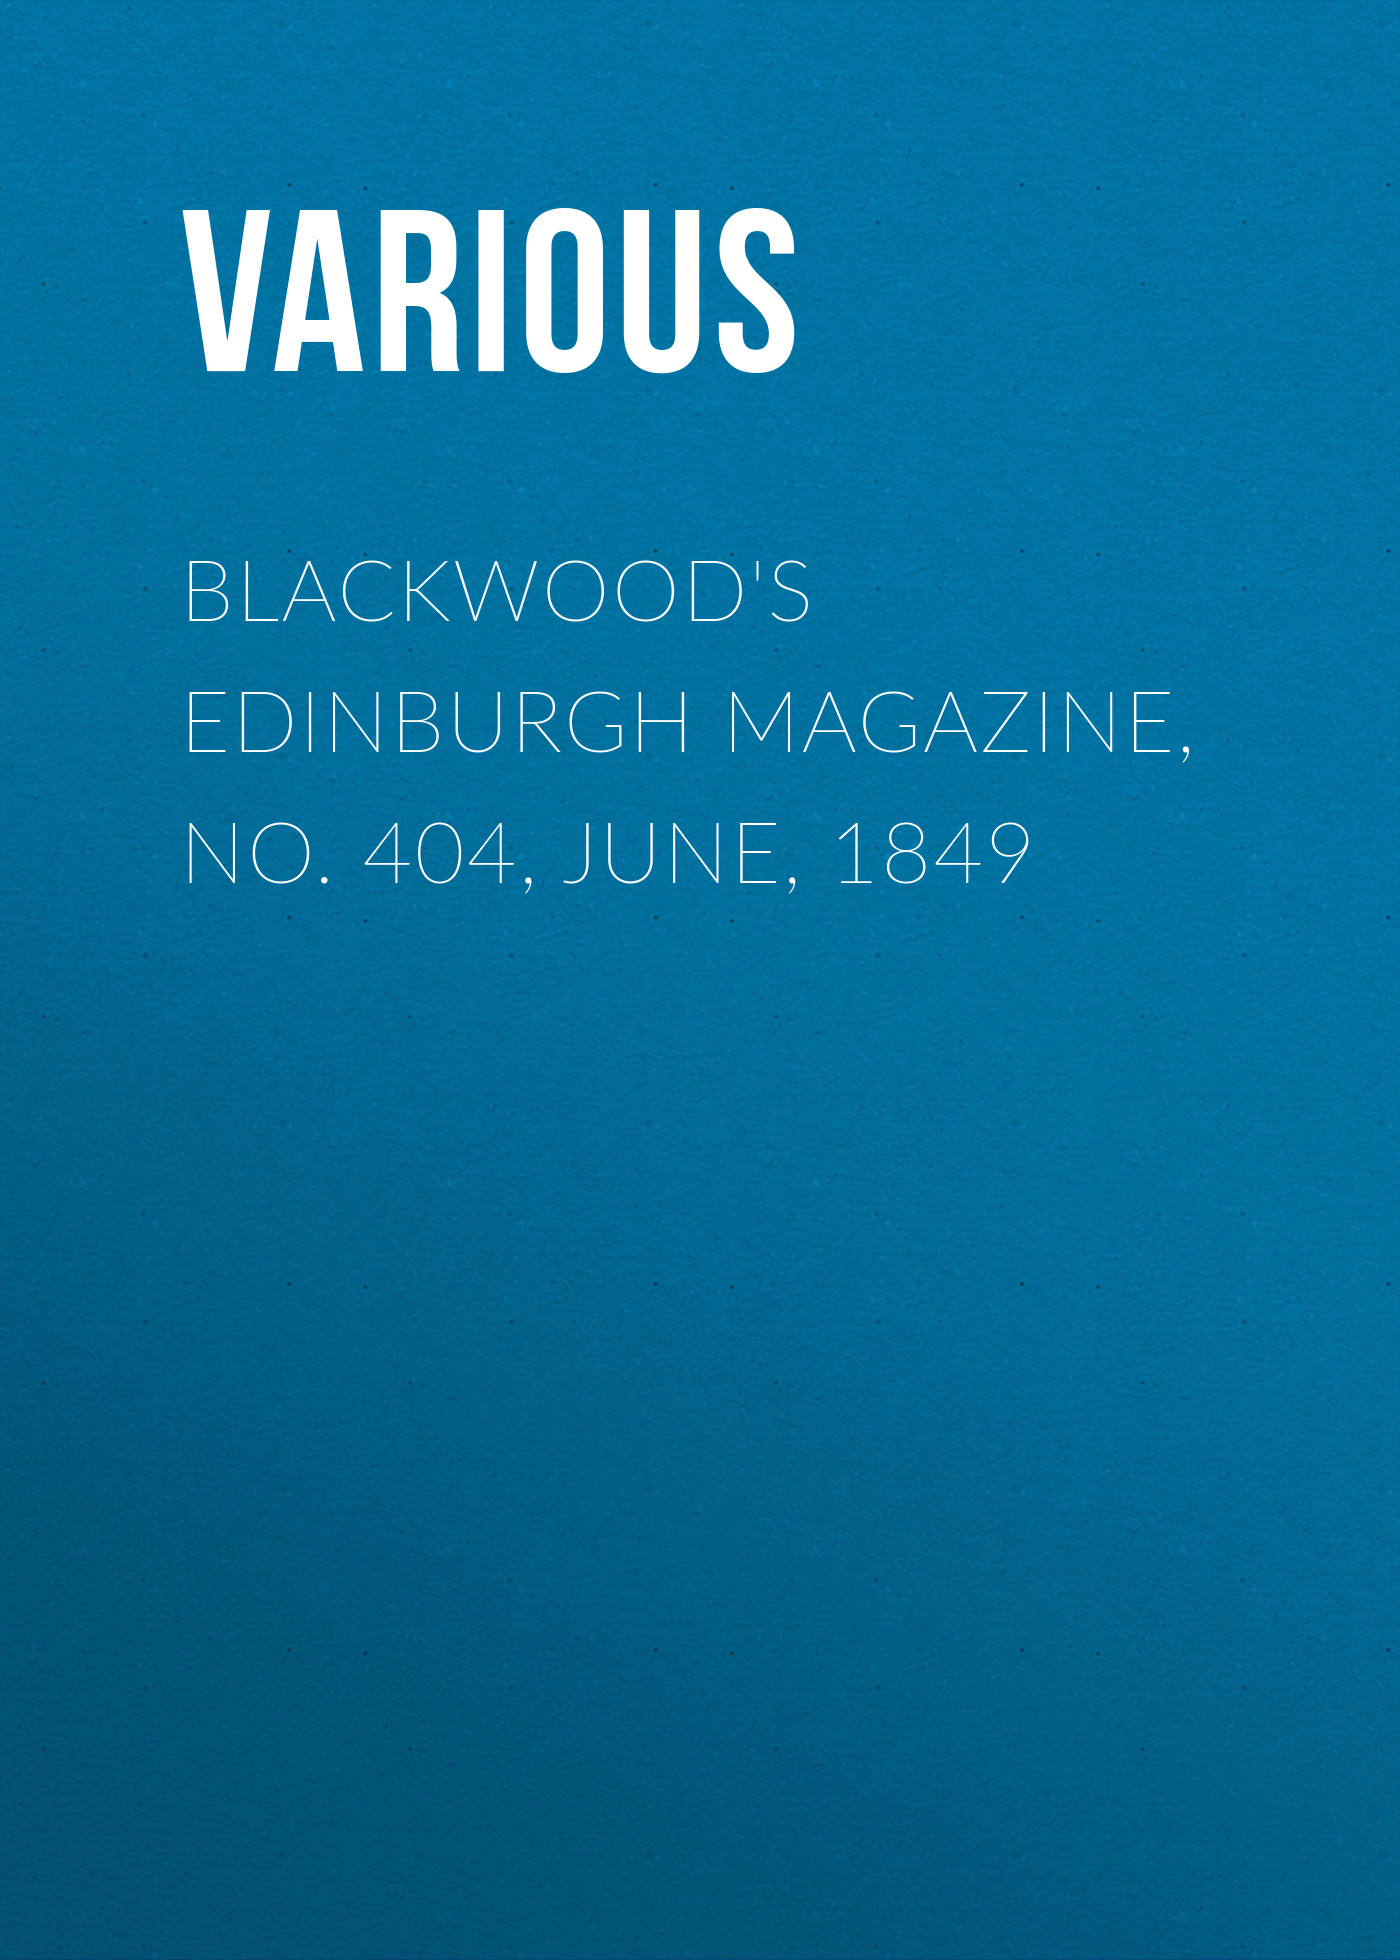 лучшая цена Various Blackwood's Edinburgh Magazine, No. 404, June, 1849